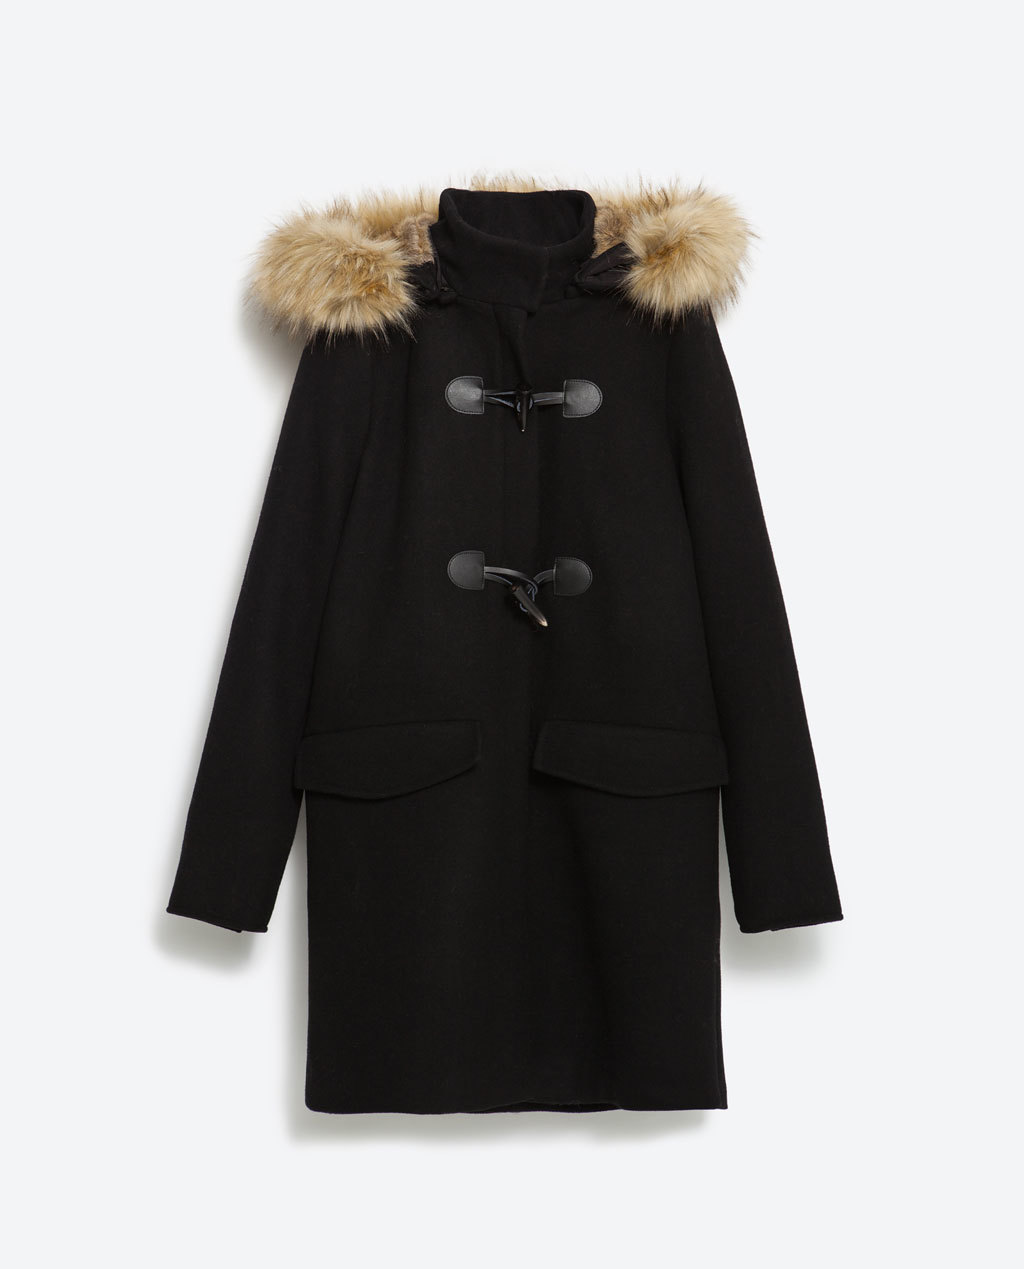 Duffle Coat With Faux Fur Hood - pattern: plain; collar: funnel; style: duffle coat; length: mid thigh; secondary colour: stone; predominant colour: black; occasions: casual, creative work; fit: straight cut (boxy); fibres: wool - mix; sleeve length: long sleeve; sleeve style: standard; collar break: high; pattern type: fabric; texture group: woven bulky/heavy; embellishment: fur; season: a/w 2015; wardrobe: highlight; embellishment location: shoulder